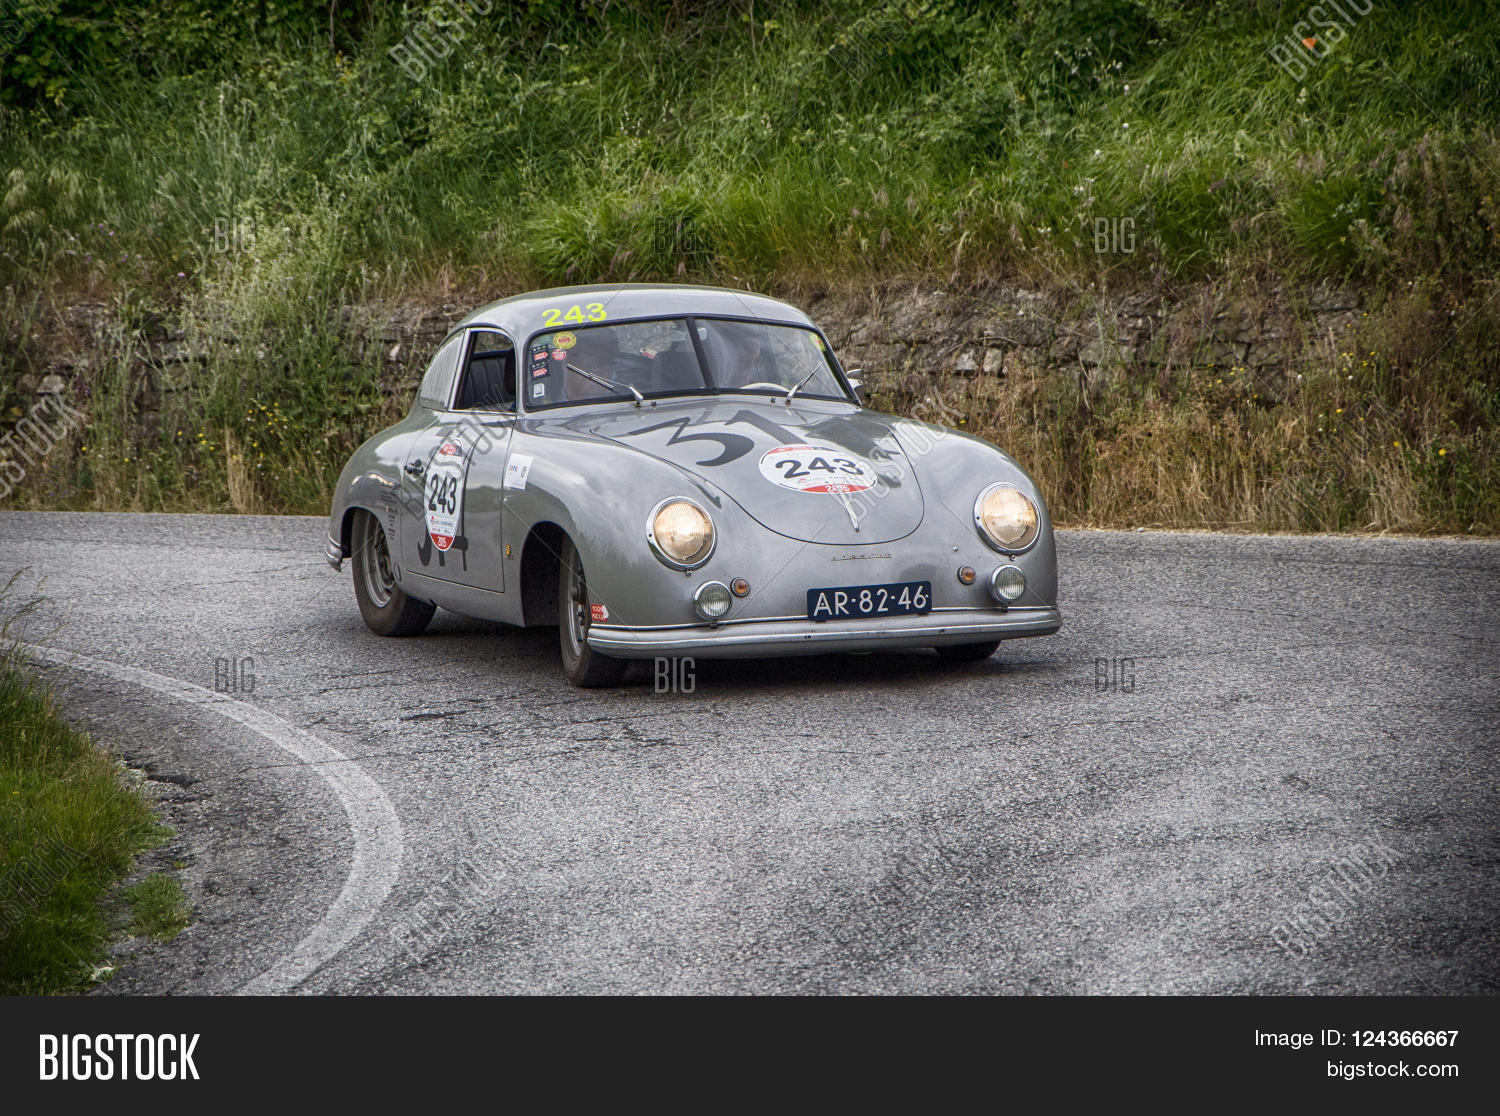 PORSCHE 356 1500 Coupé 1952 PESARO Image & Photo | Bigstock